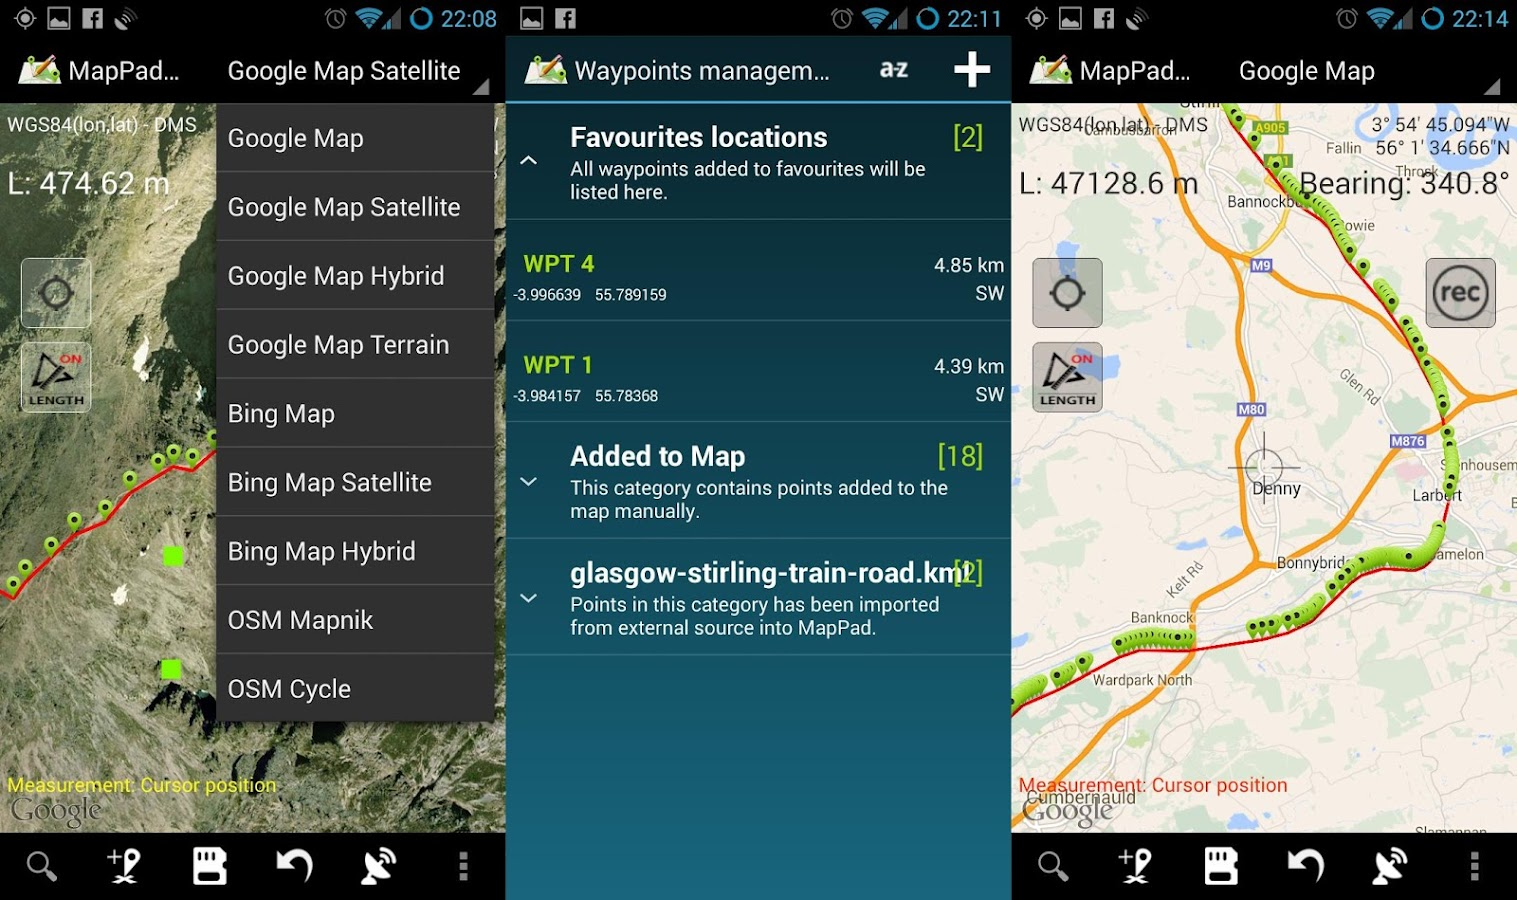 Map Pad GPS Land Surveys & Measurements- screenshot